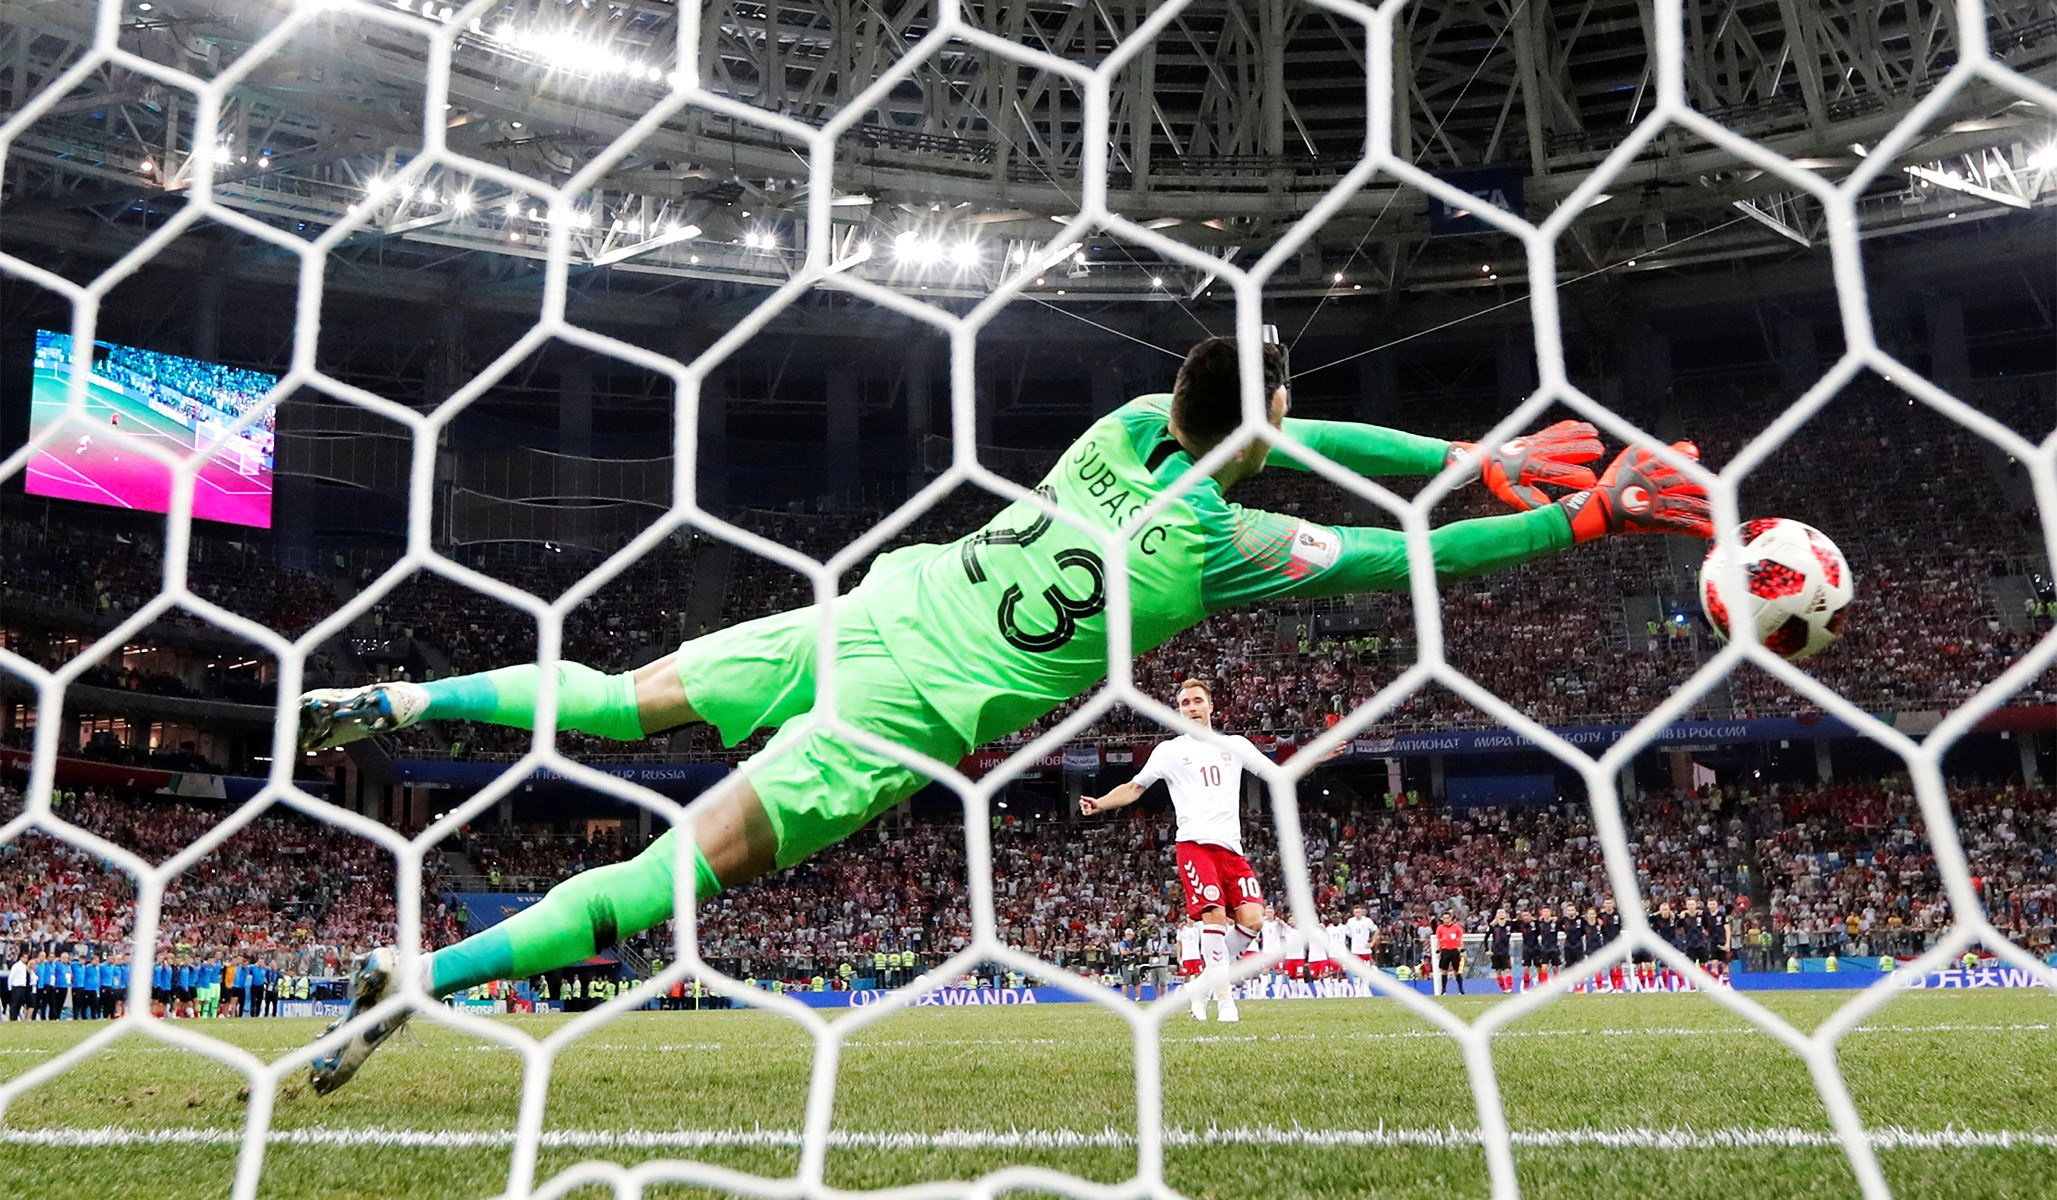 020 Soccer Vs Football Compare And Contrast Essay Example World Cup Excellent Full